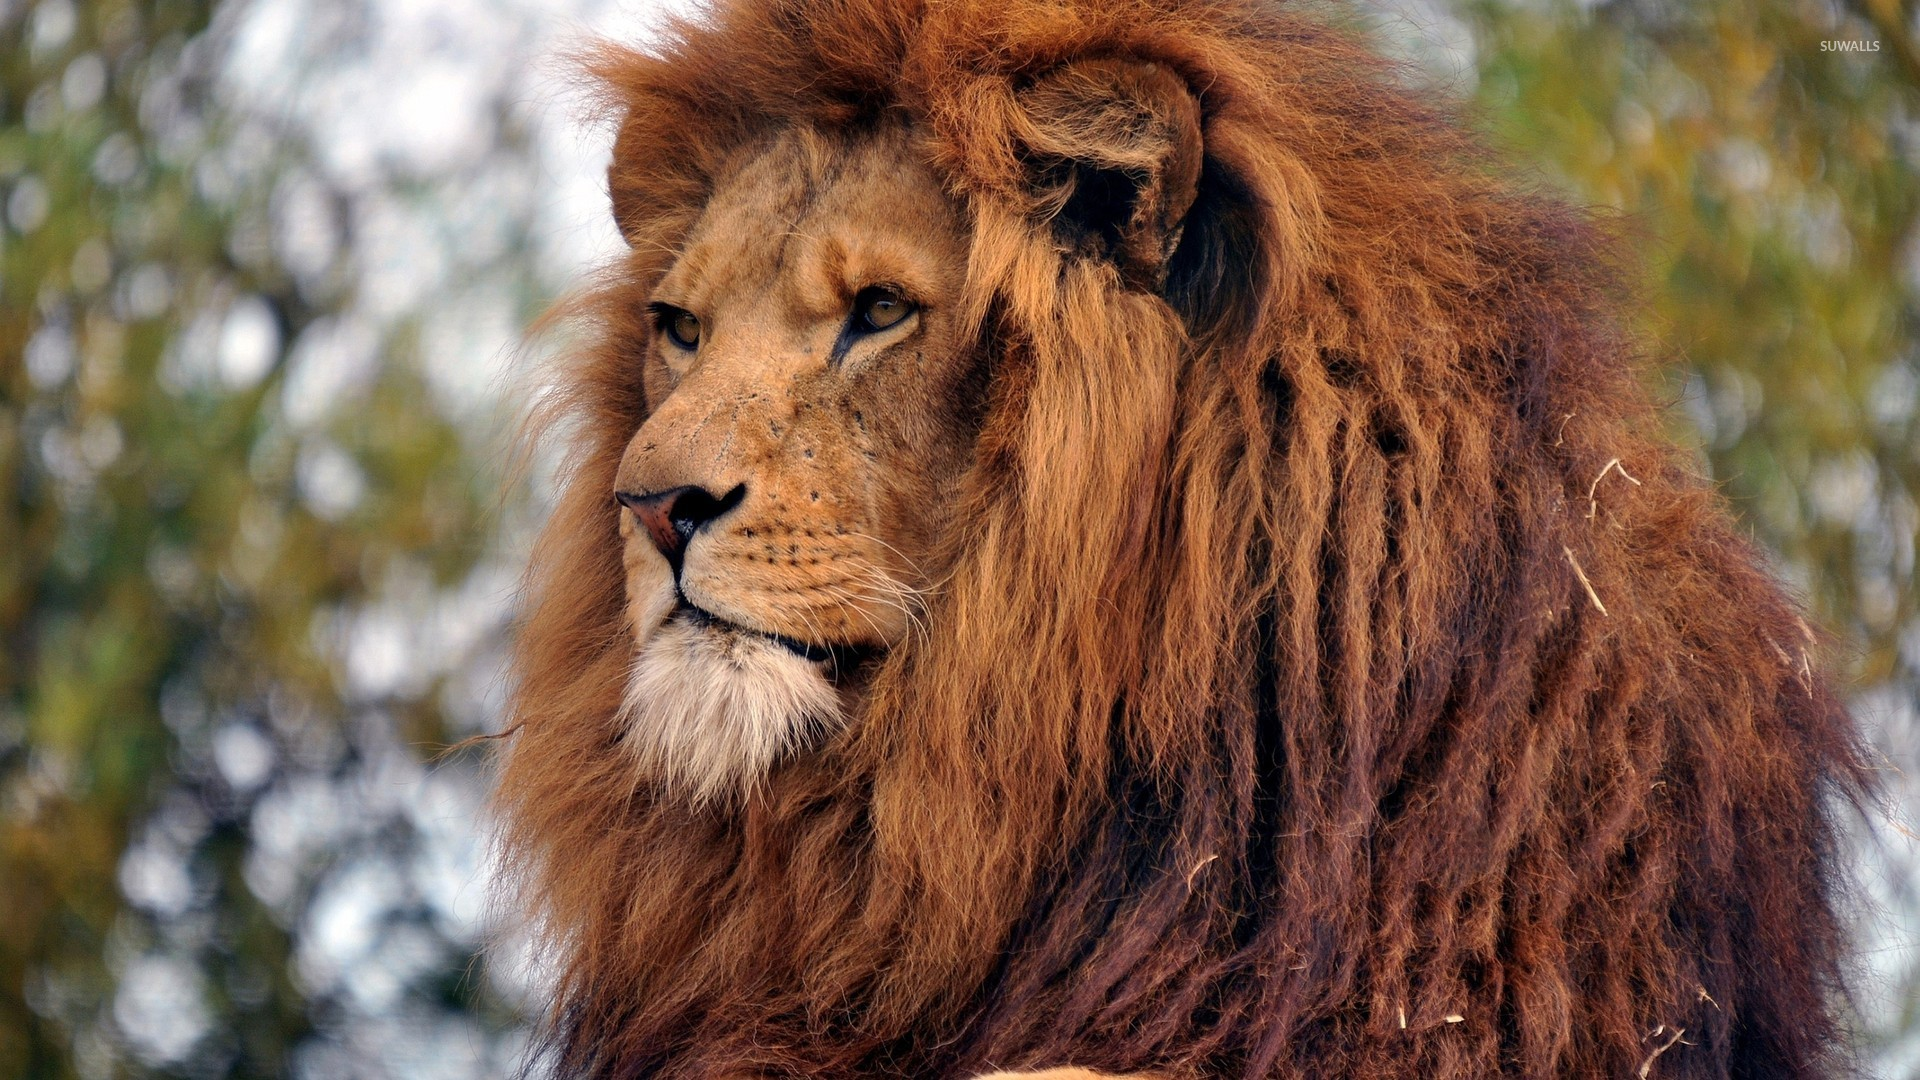 Majestic Lion Gazing Wallpaper Animal Wallpapers 49288